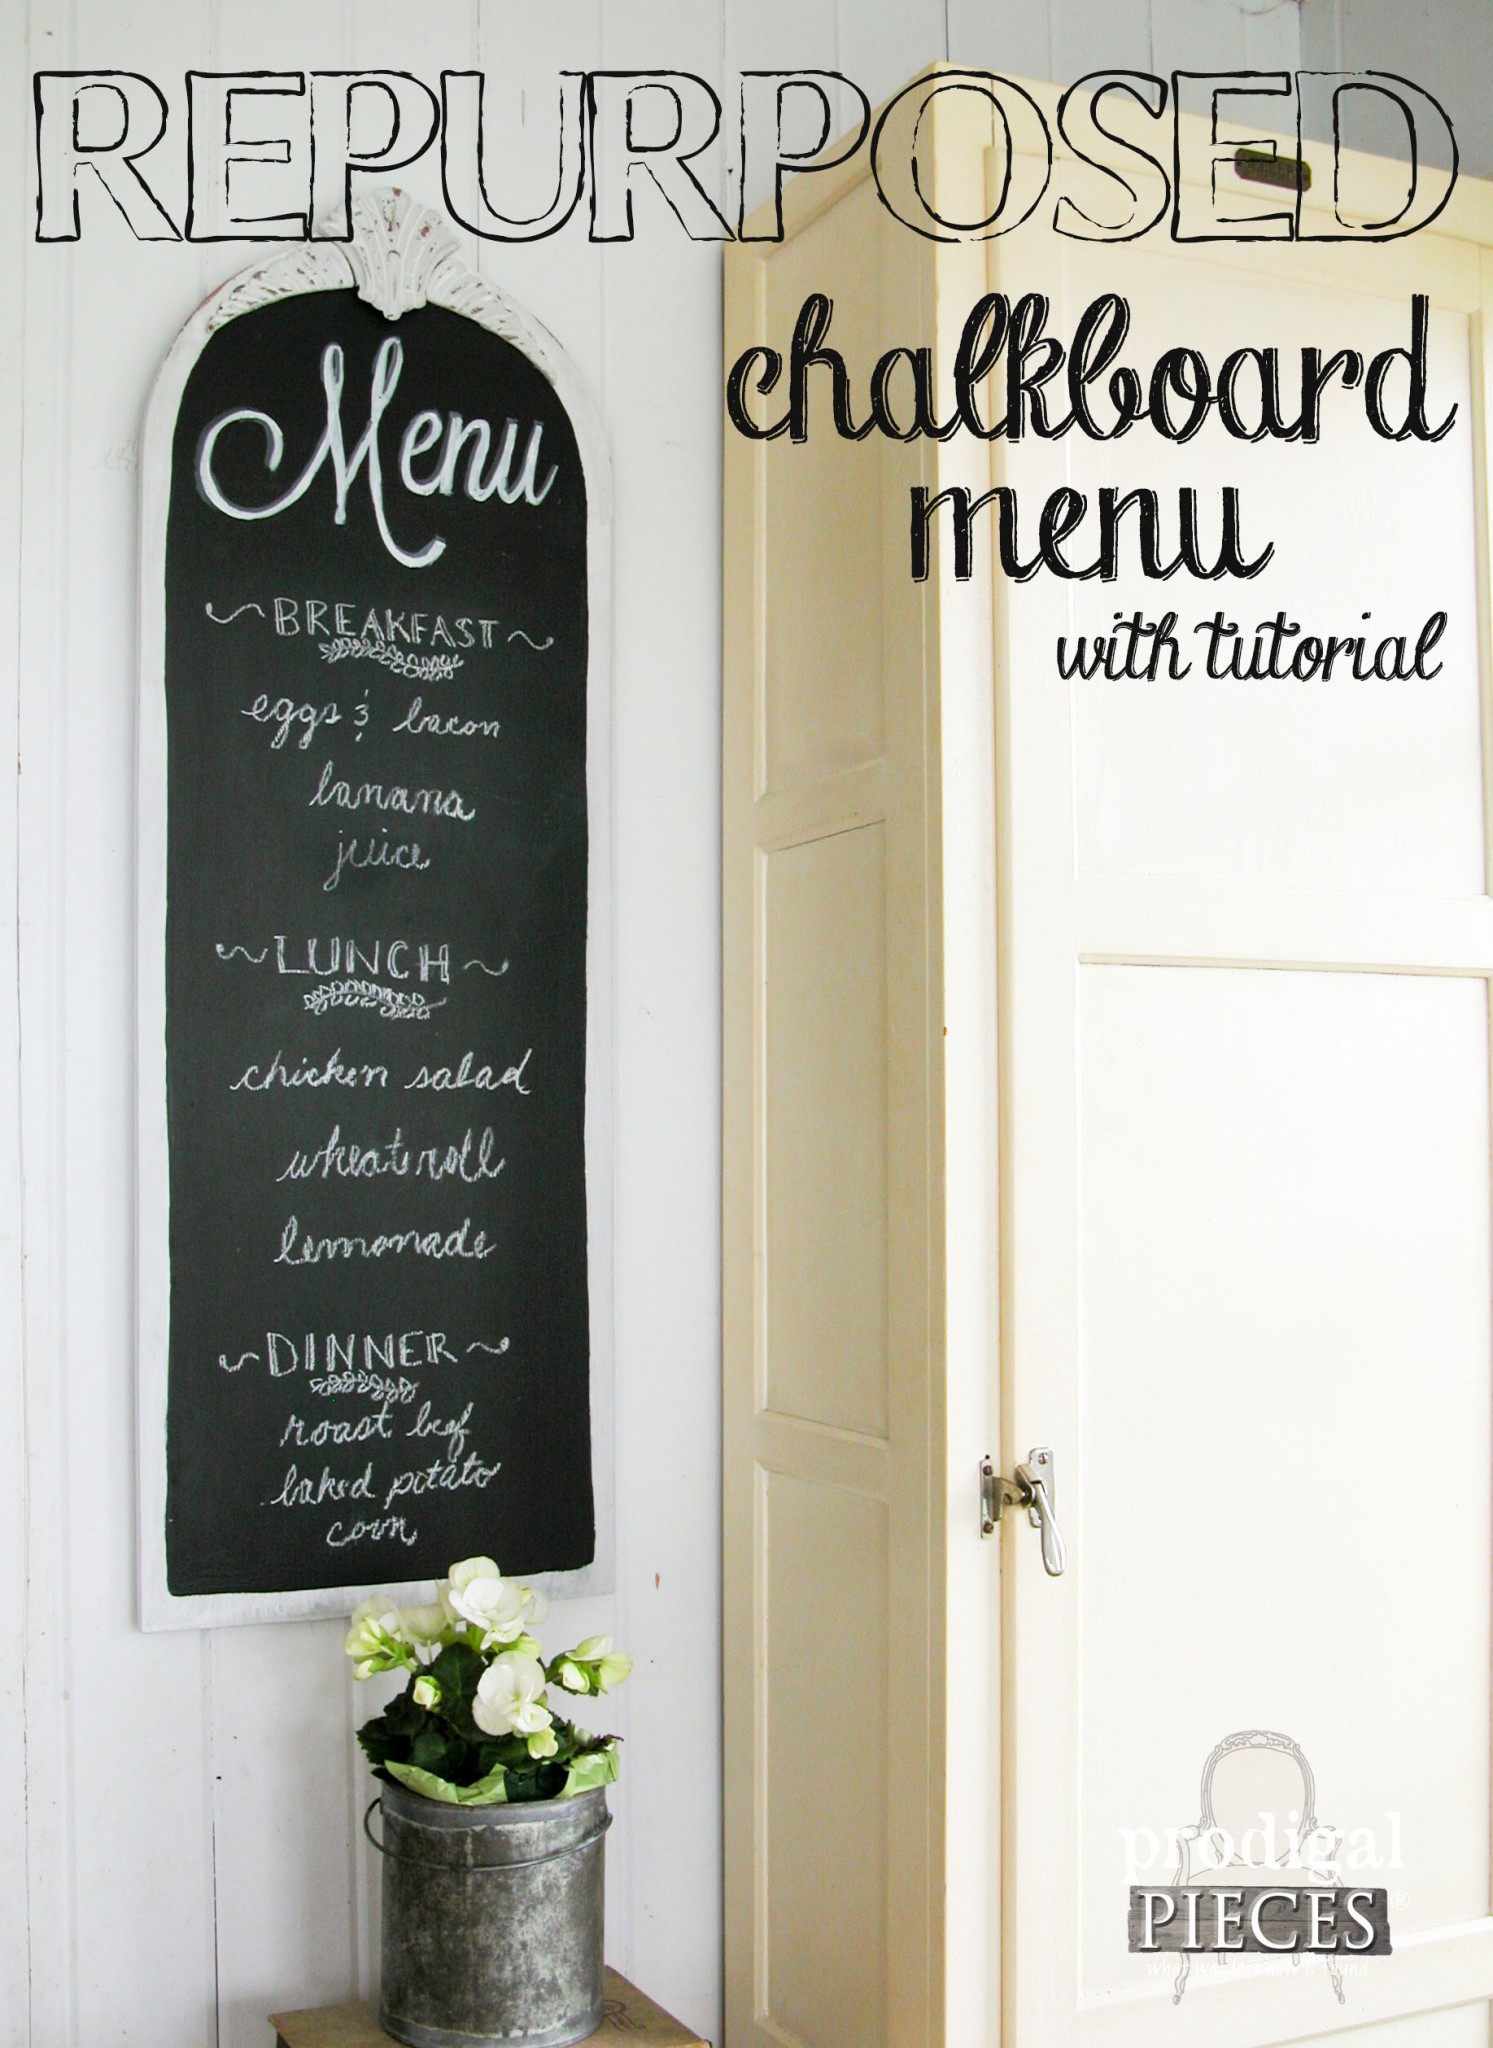 Create Your Own Repurposed Chalkboard Menu with Prodigal Pieces | www.prodigalpieces.com